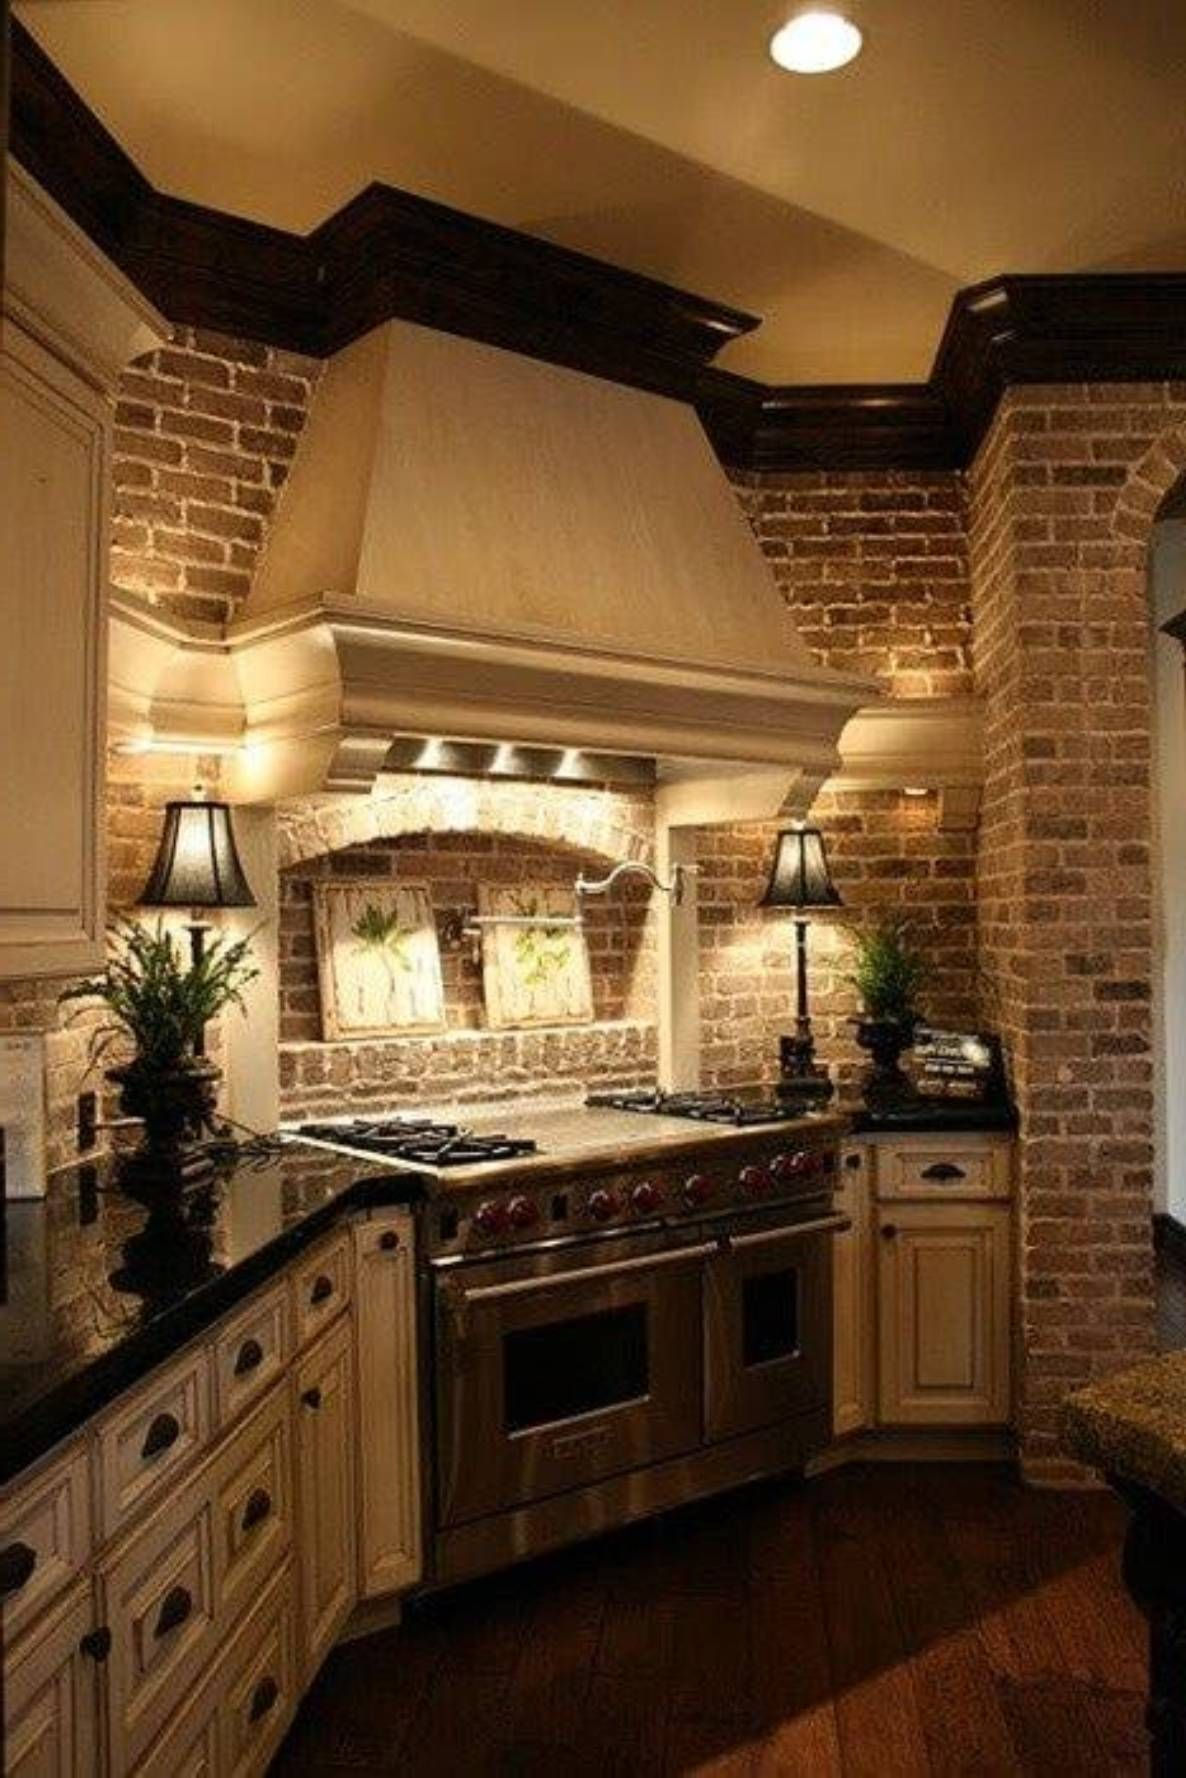 Homes And Gardens Kitchens Stunning Old World Style Kitchens Elegant Old World Style